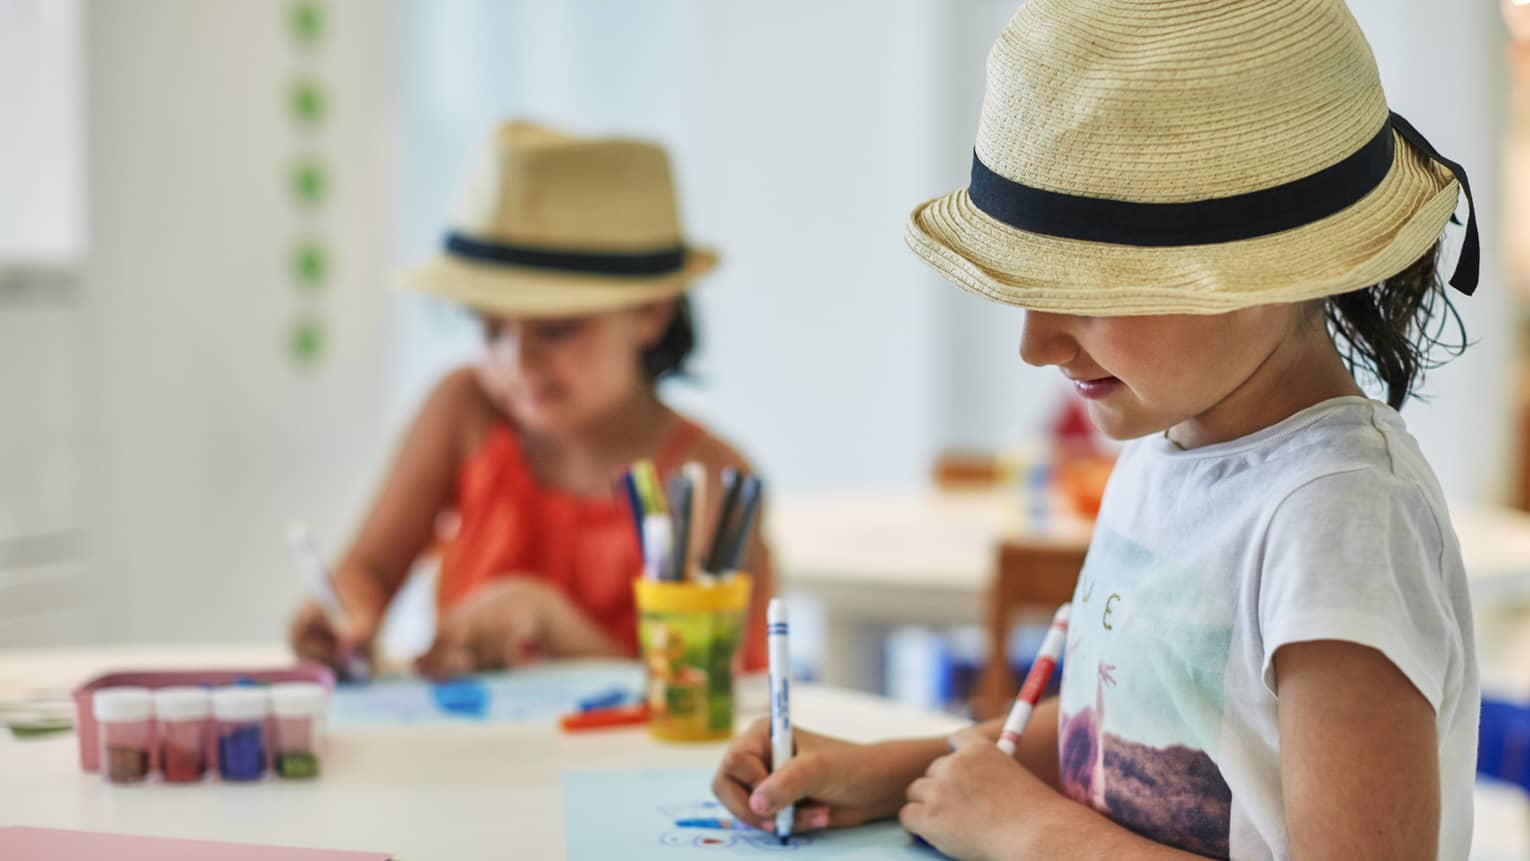 Two smiling children wearing straw fedora hats colour pictures with markers at craft table